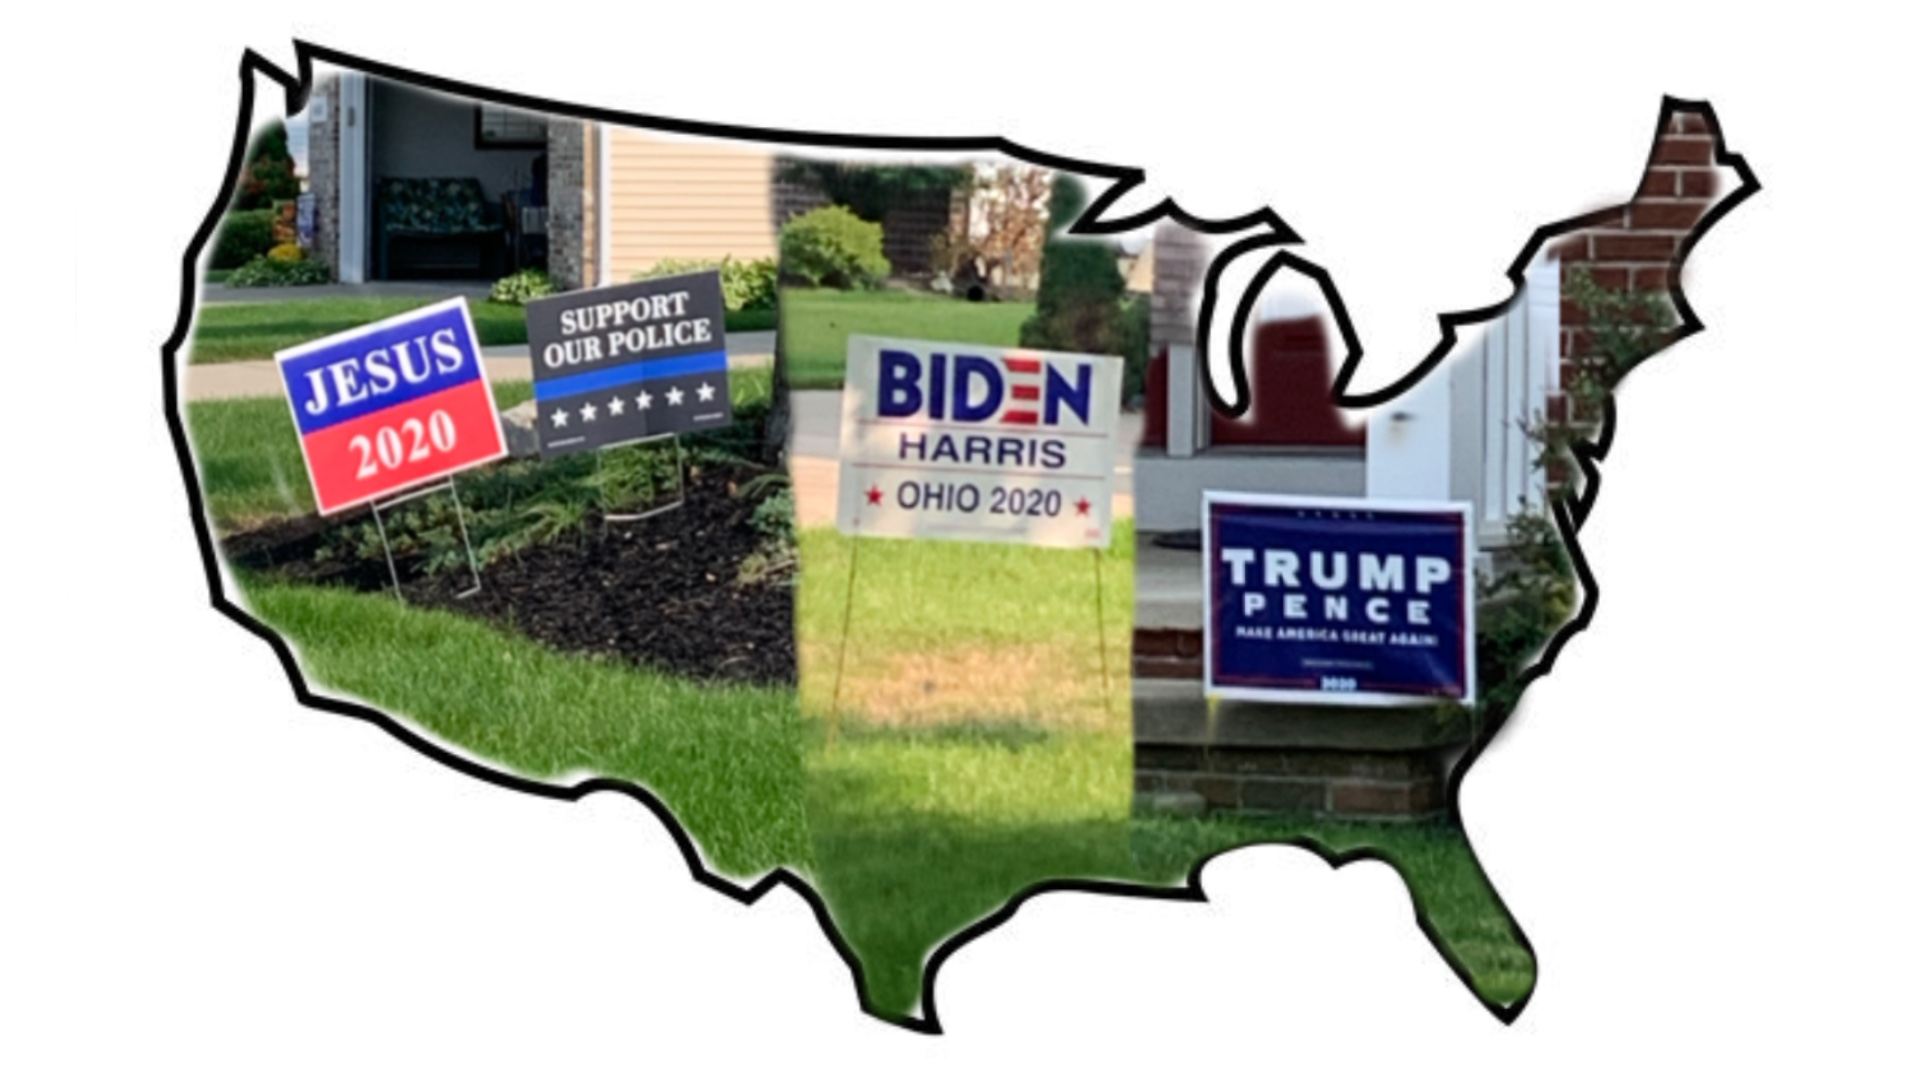 outline of united states with political signs in yards